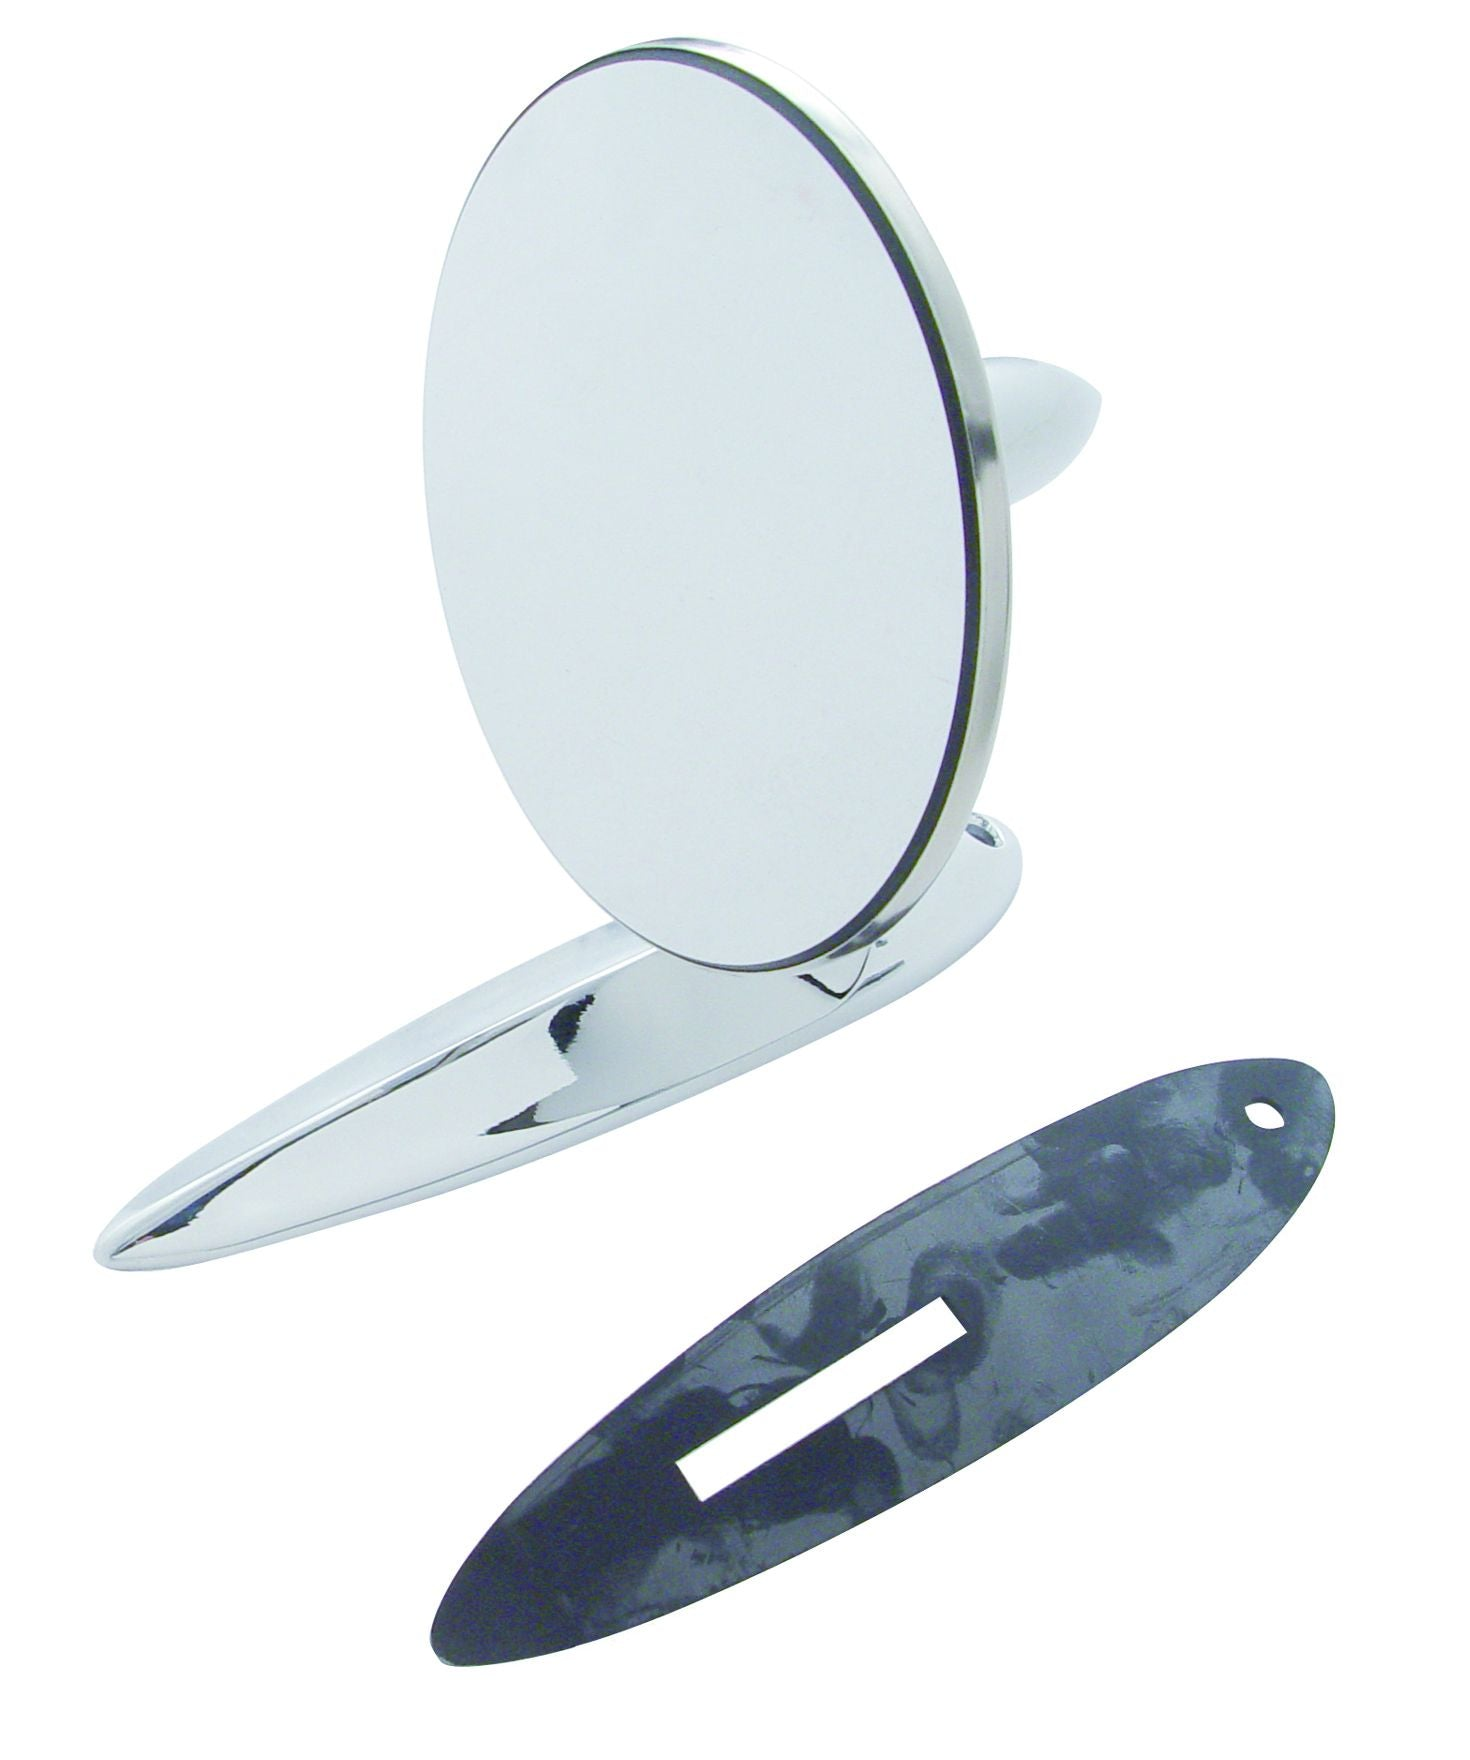 1955-57 Chevy Passenger Car Door Mirror